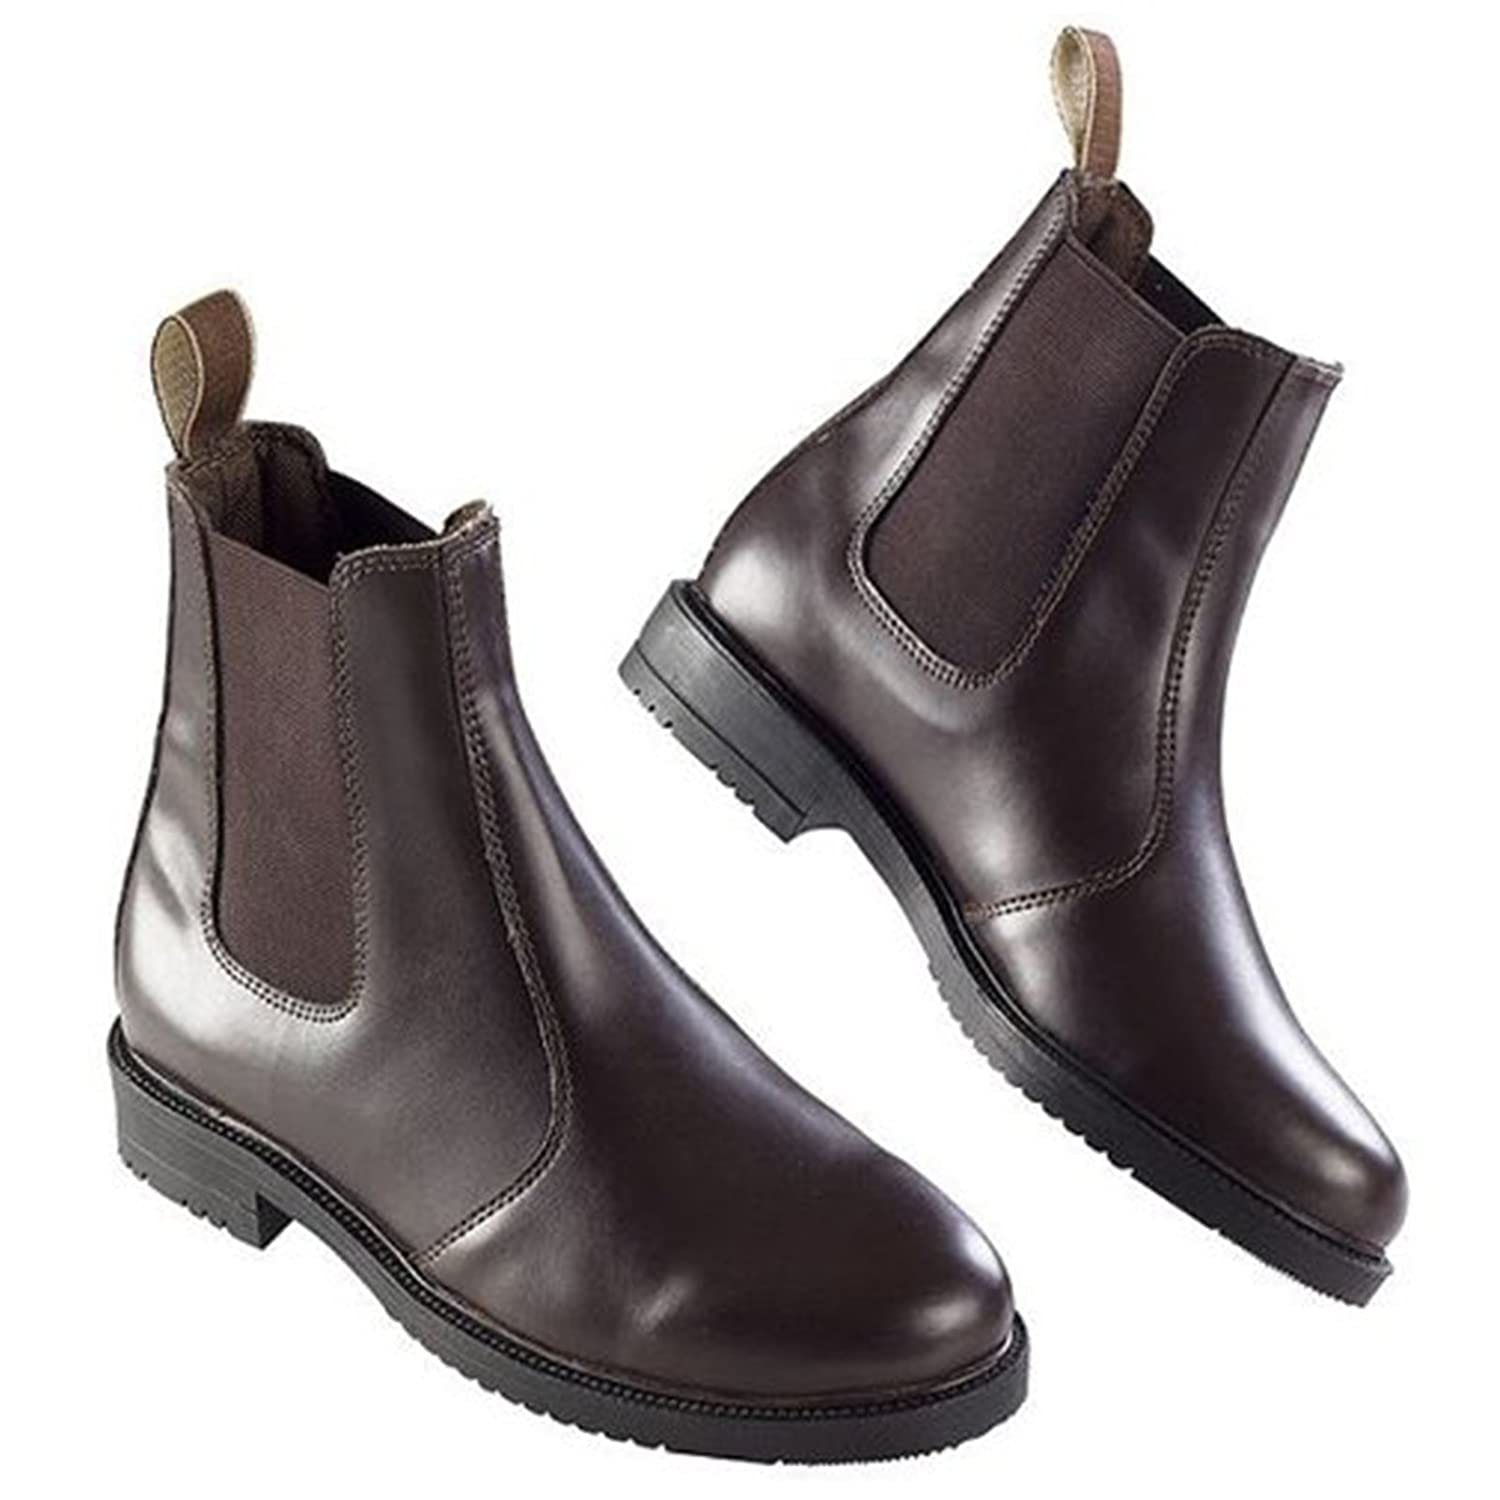 Ekkia Horse Riding Jumping Kids Adults Equi Leather Stable Yard Jodhpur Boots